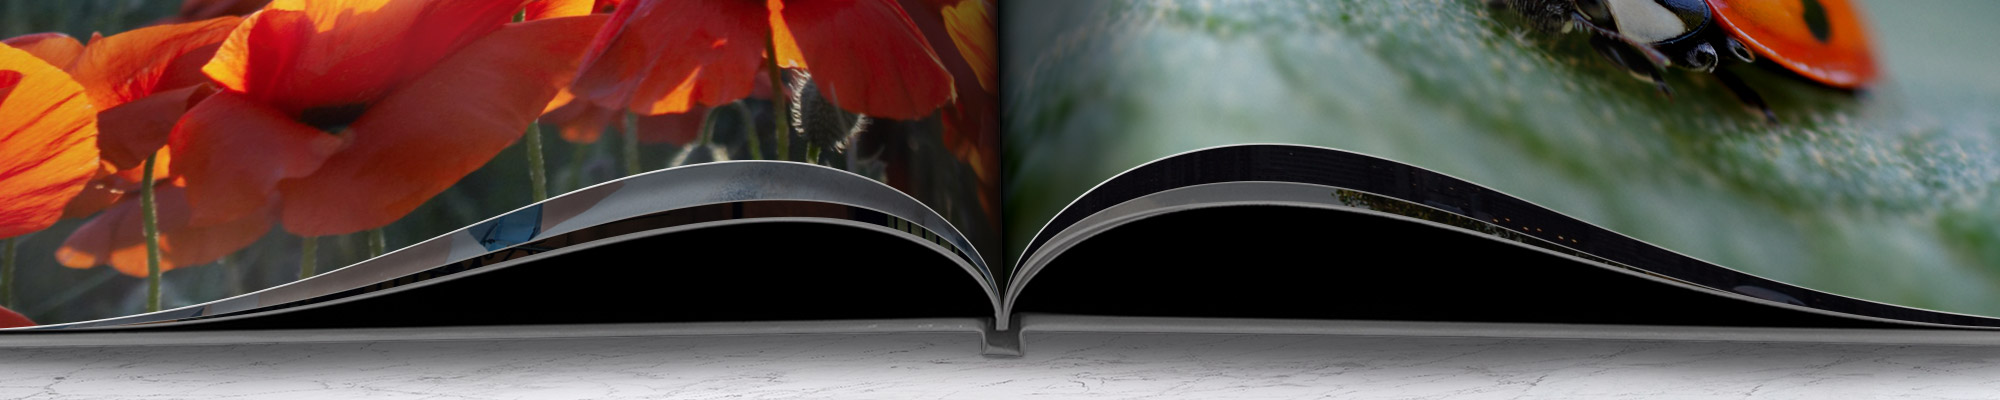 Photo Books with standard paper